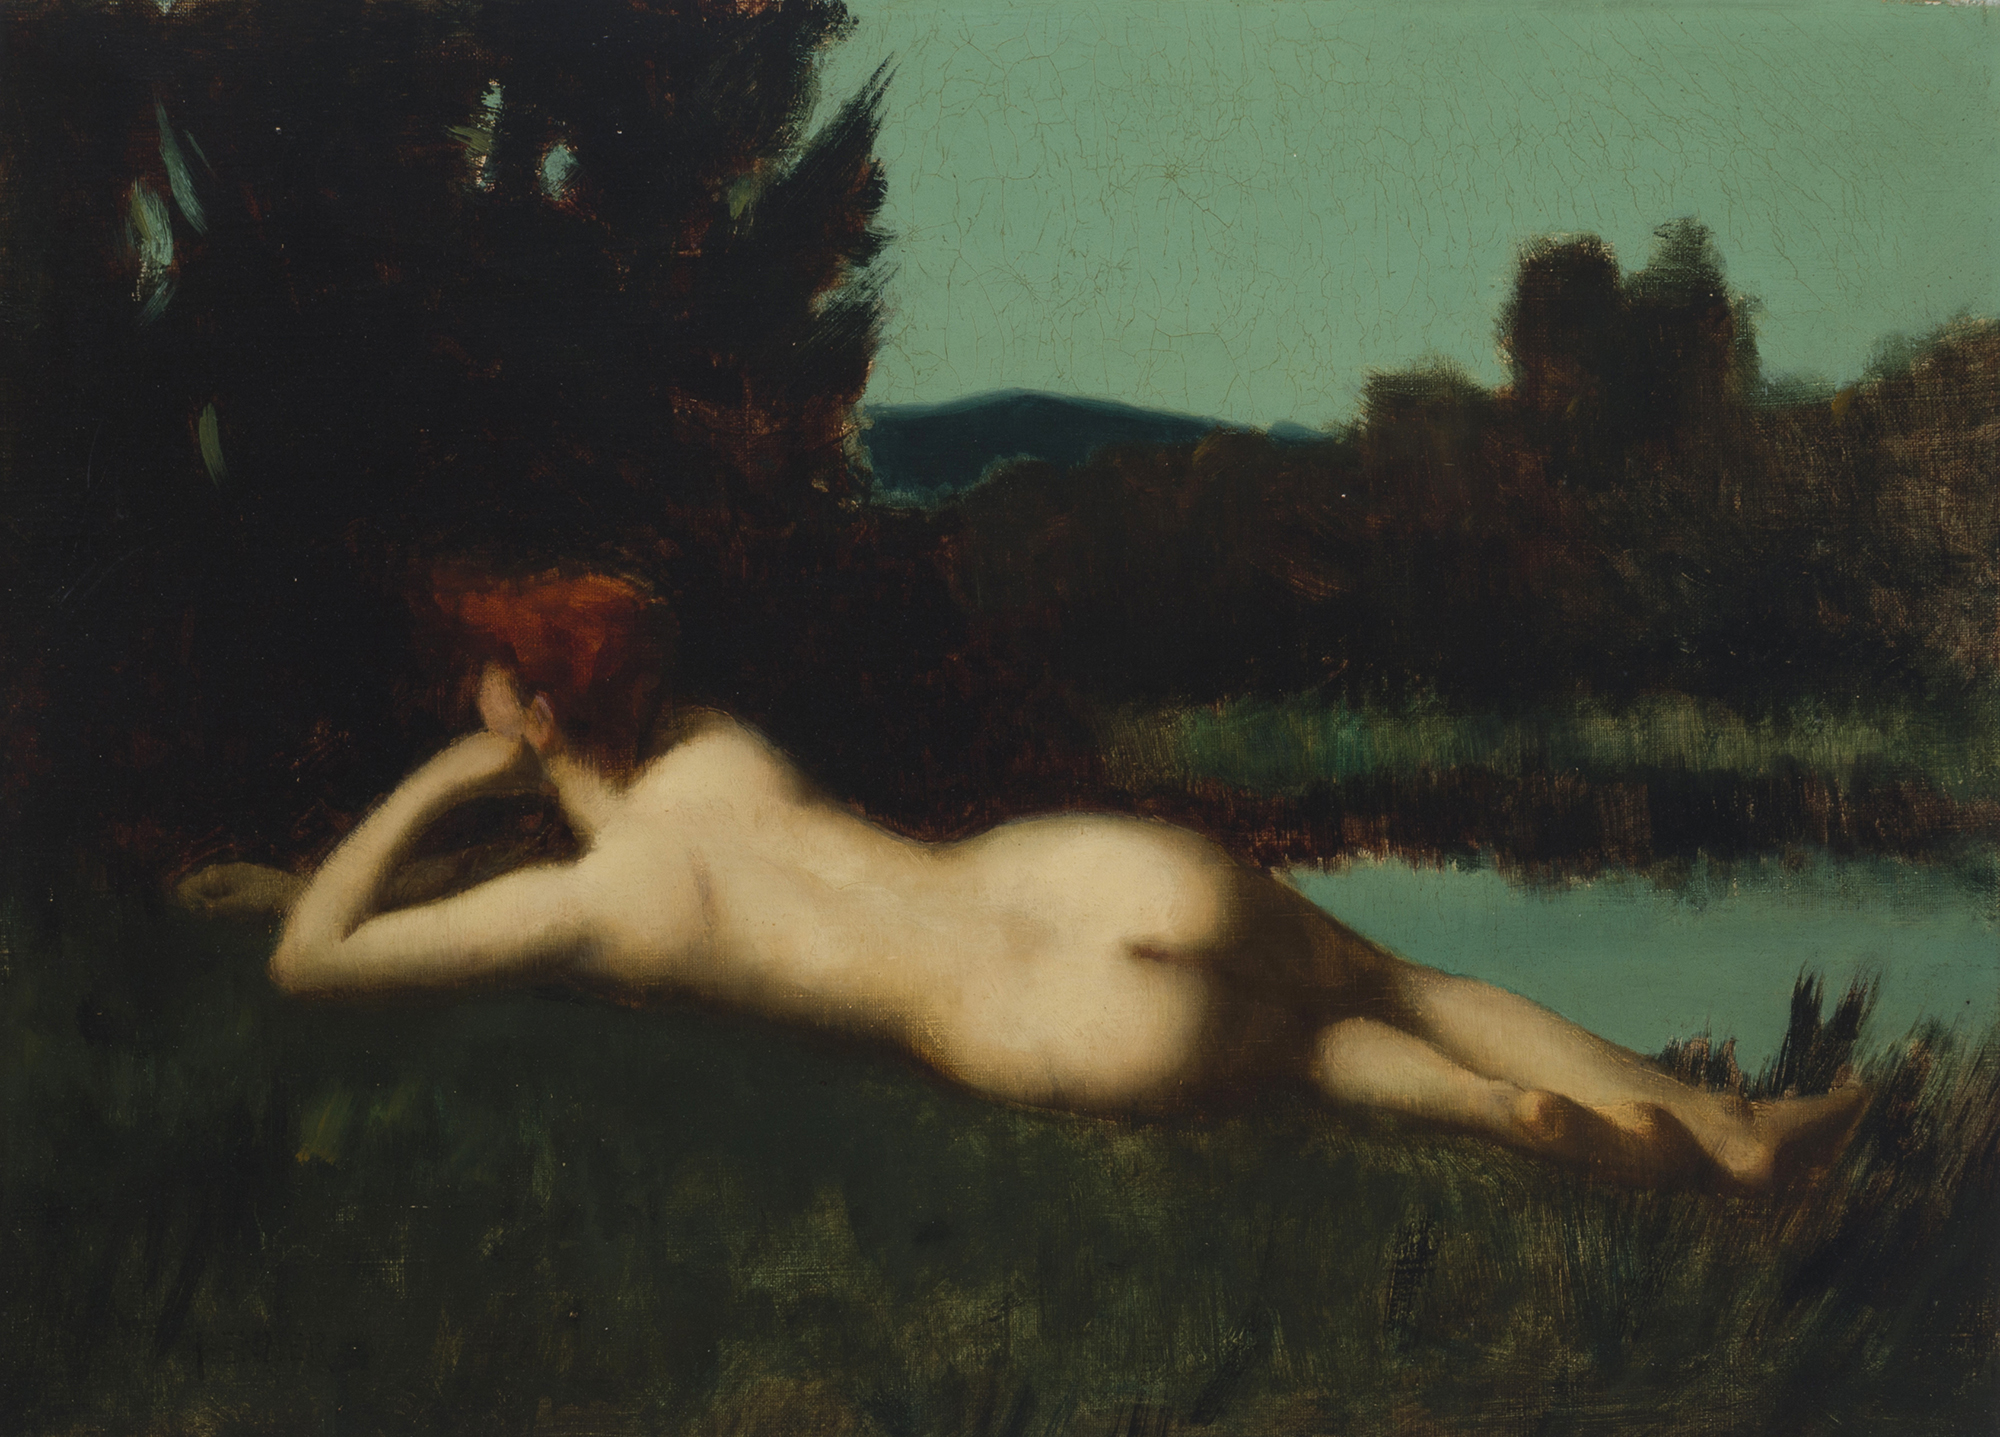 Lot 52 - Jean-Jacques Henner (1829-1905 French)